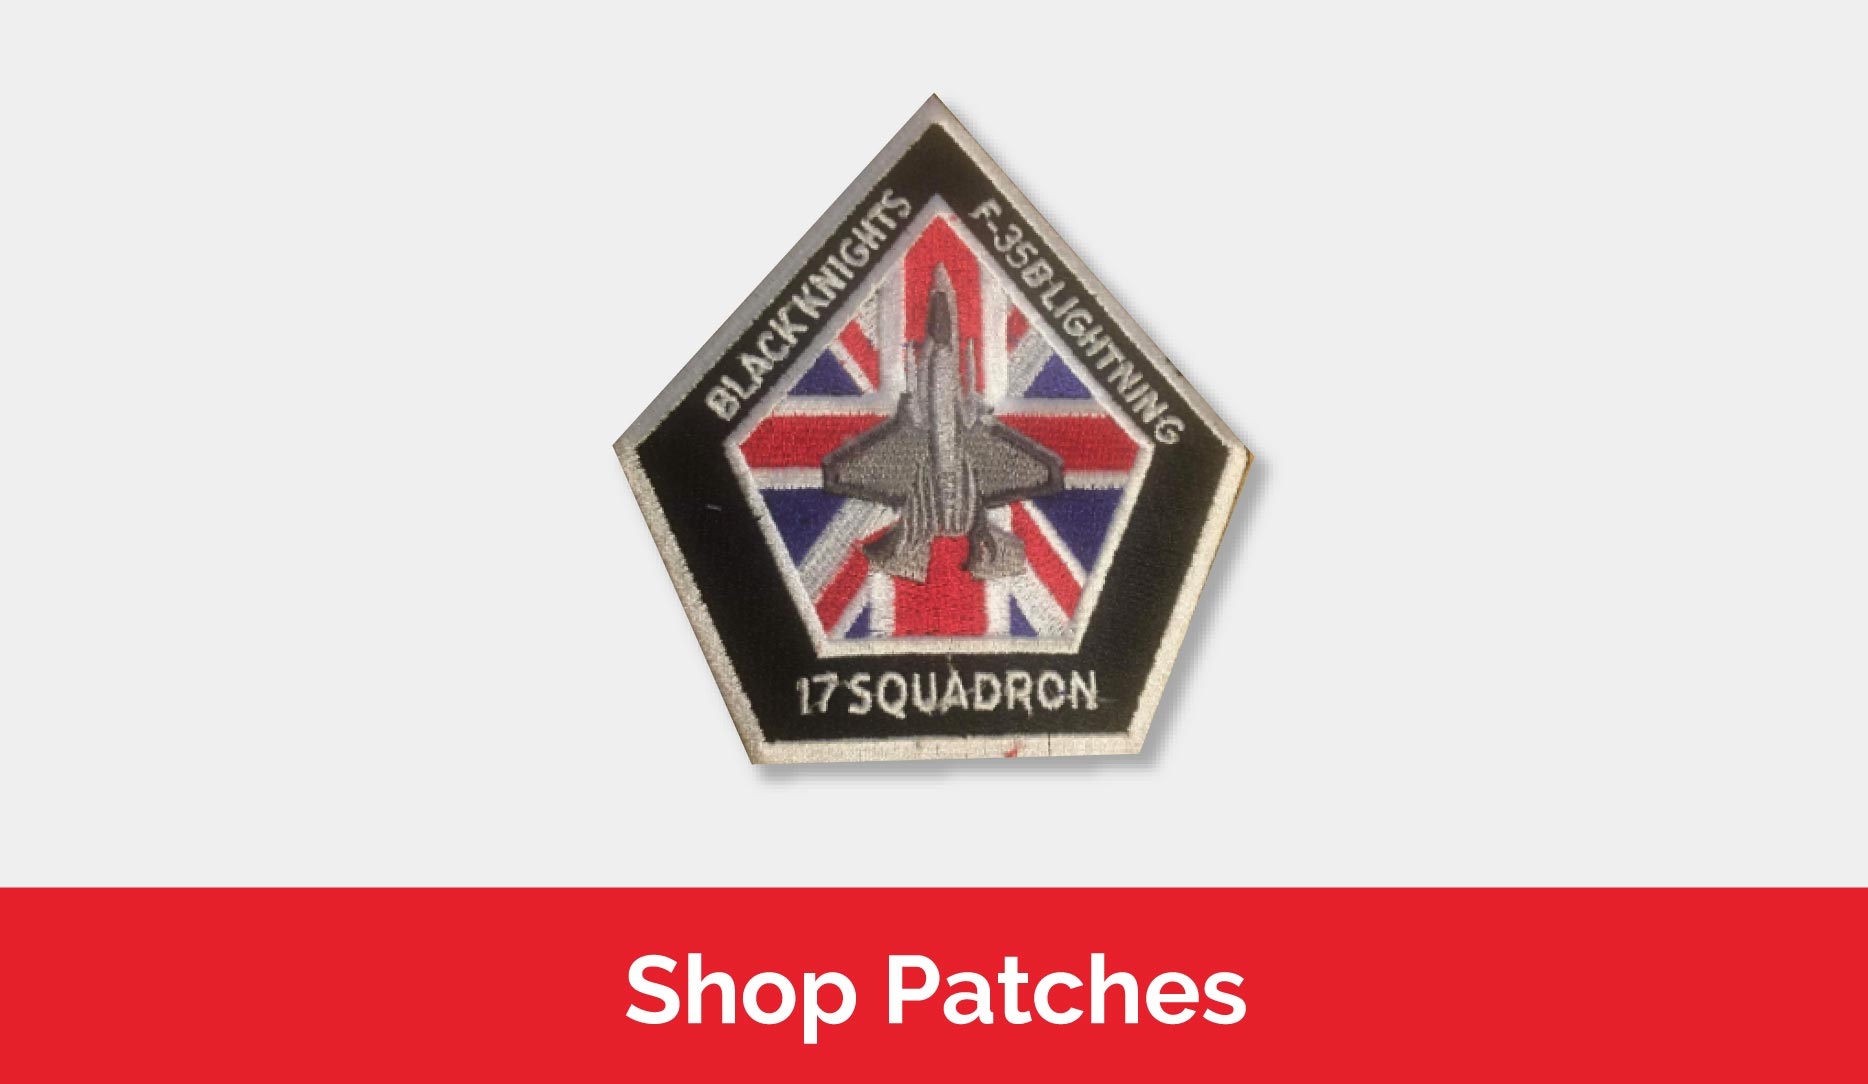 Shop patches and badges